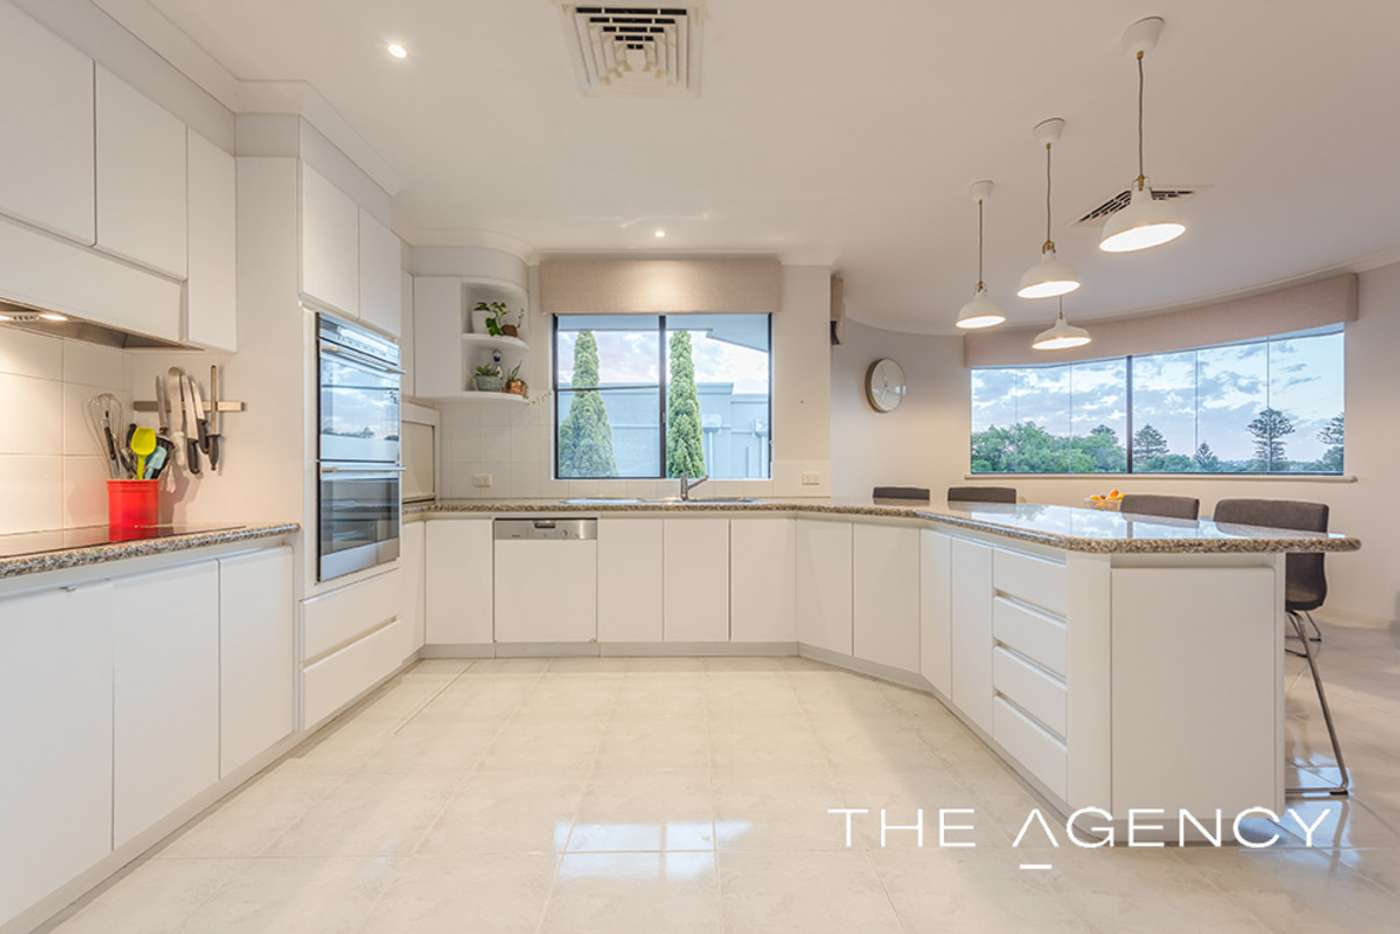 Sixth view of Homely house listing, 20 Kavanagh Street, West Leederville WA 6007